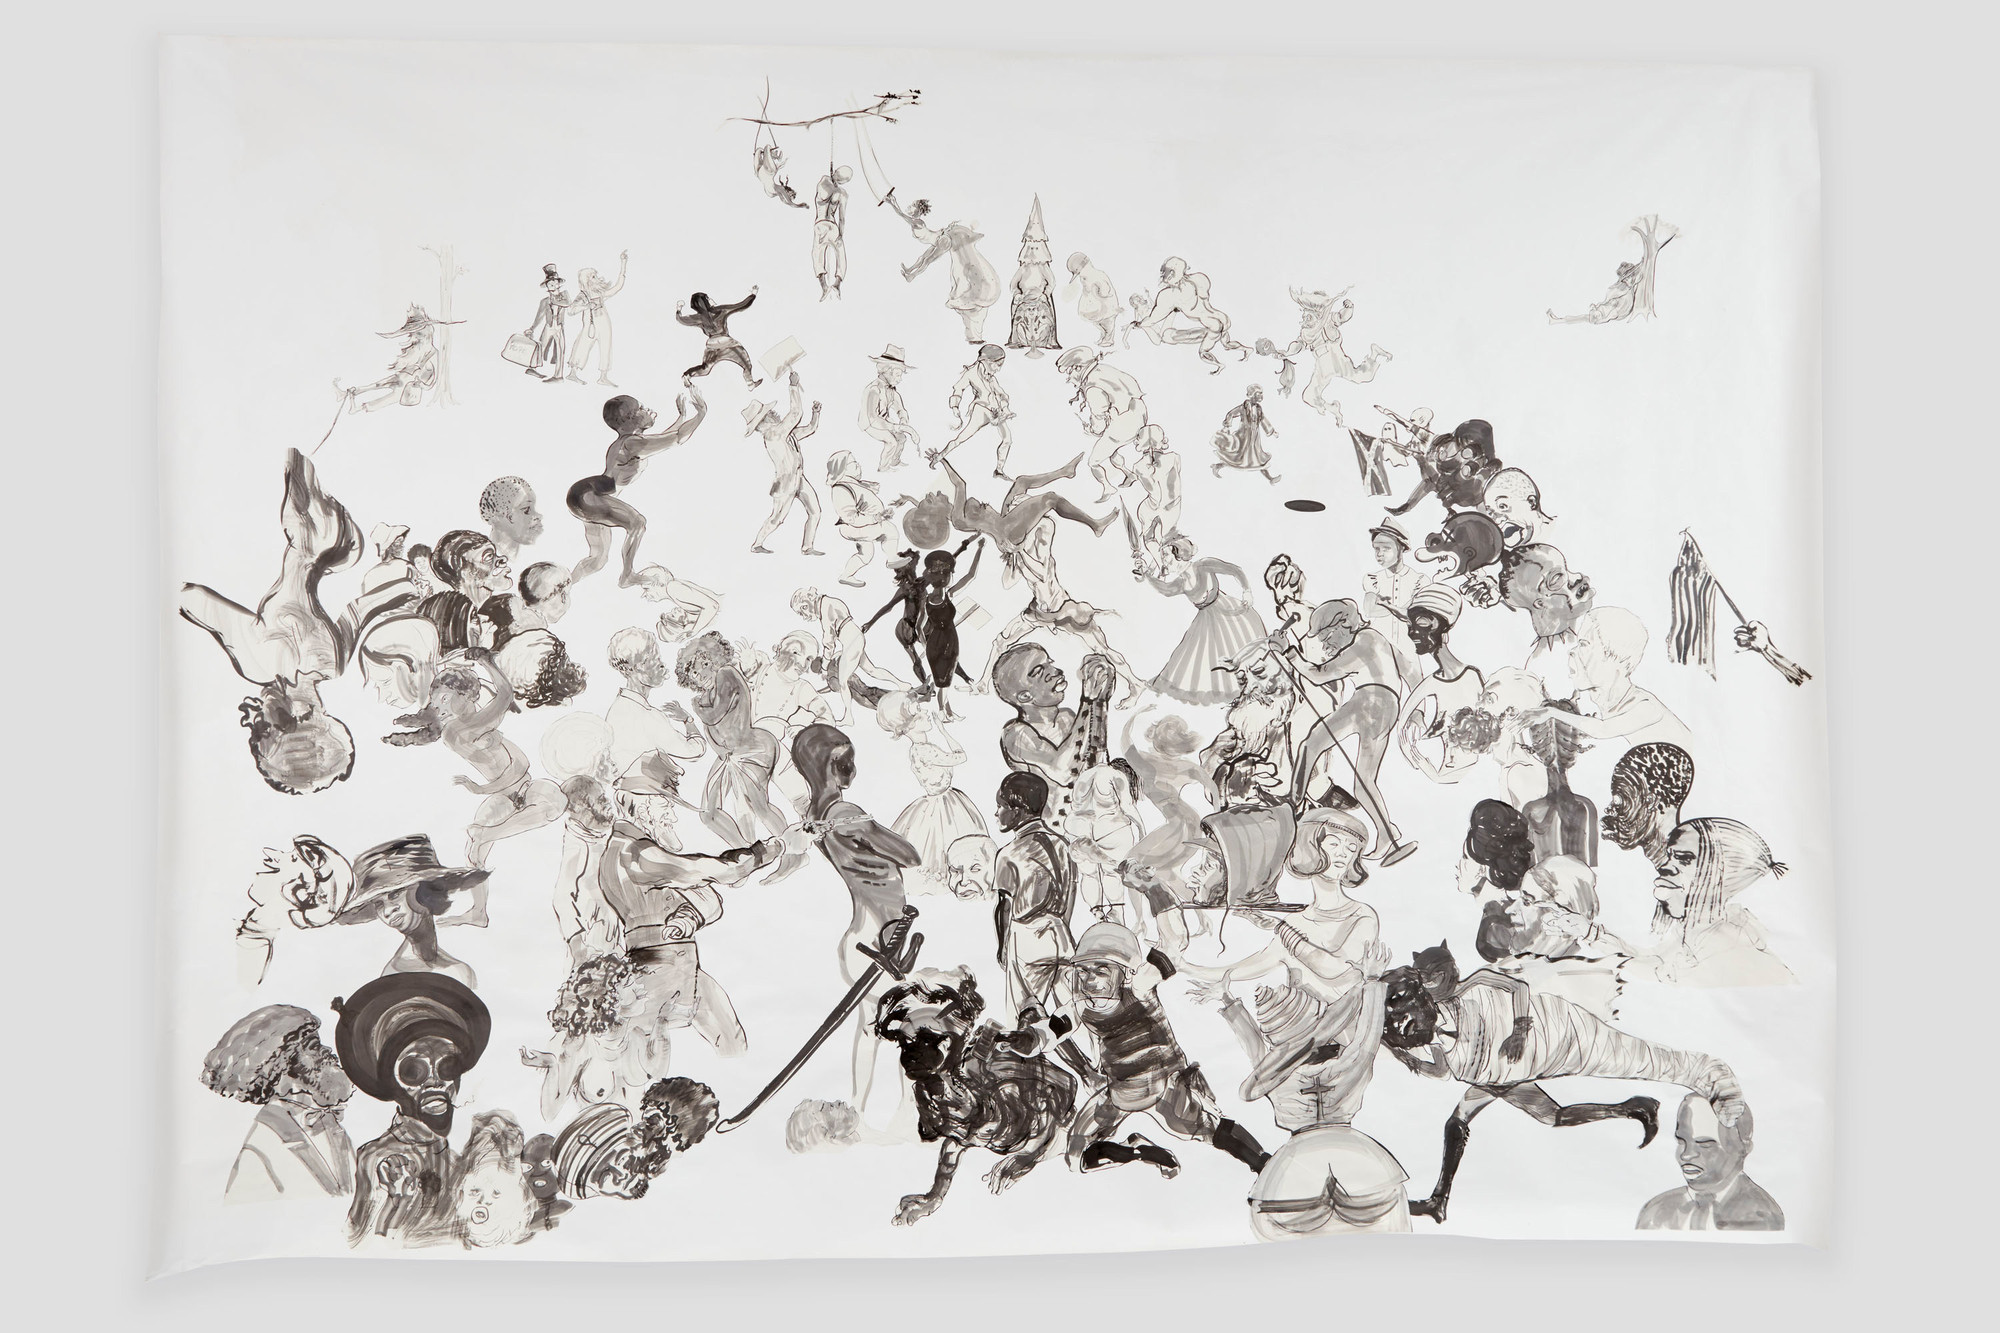 Kara Walker, Christ's Entry Into Journalism. 2017. Ink and pencil on paper, cut-and-pasted on painted paper. The Museum of Modern Art, New York. Acquired through the generosity of Agnes Gund, the Contemporary Arts Council of The Museum of Modern Art, Carol and Morton Rapp, Marnie Pillsbury, the Contemporary Drawing and Print Associates, and Committee on Drawings and Prints Fund. © 2018 Kara Walker